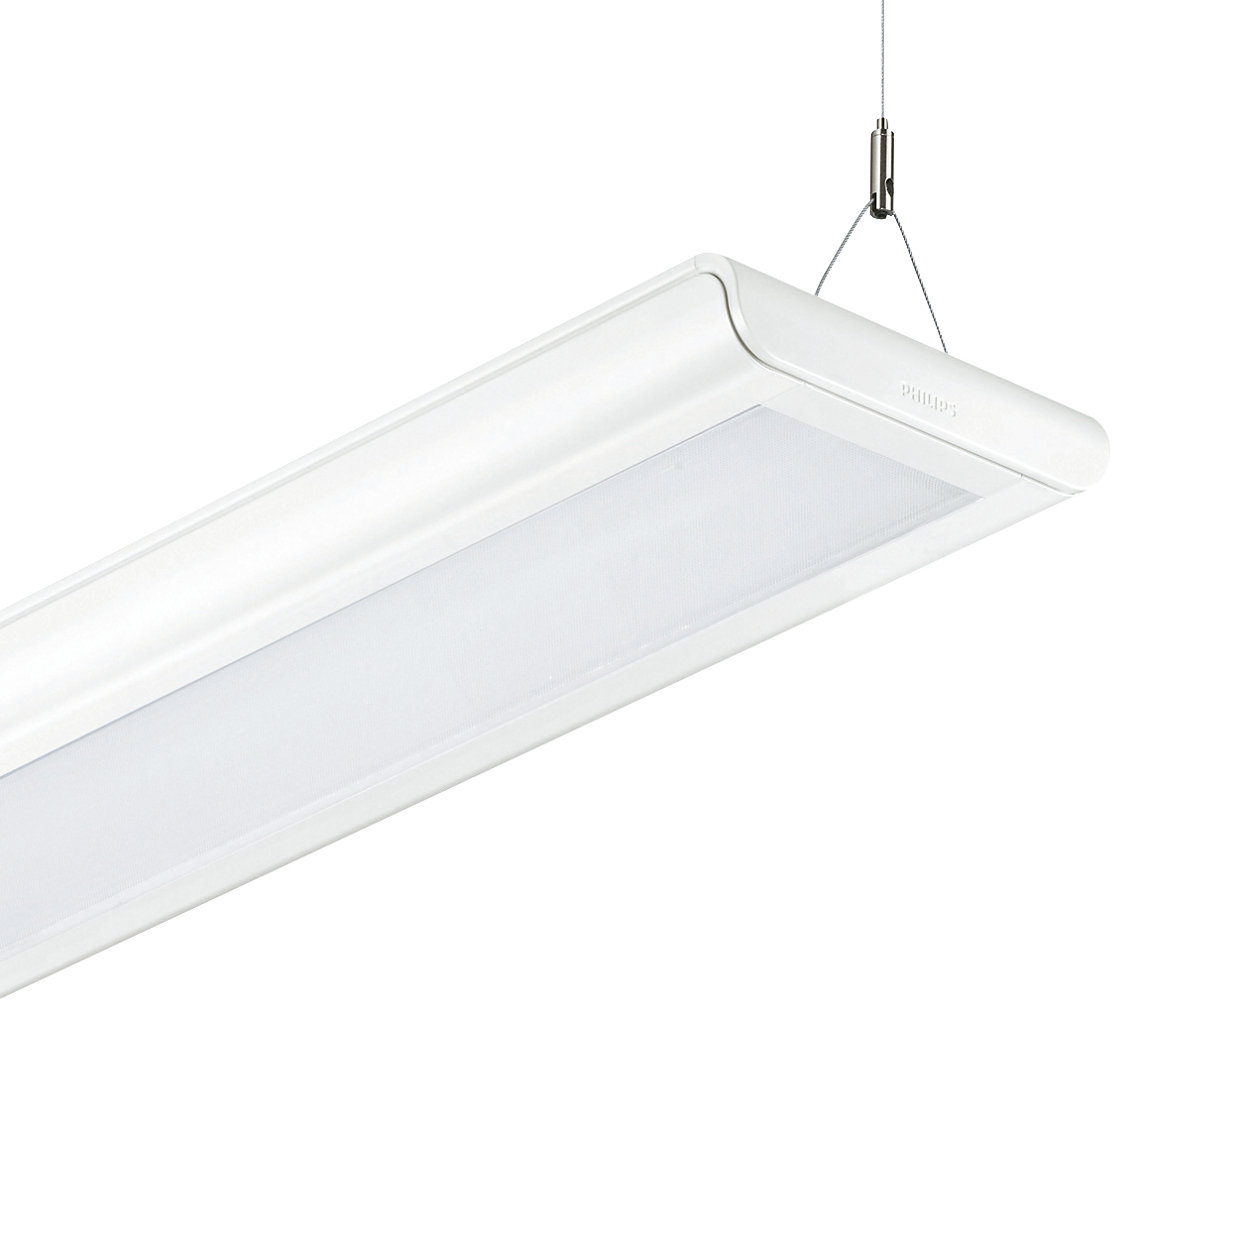 SmartForm TPS466 – top-class lighting in a fresh, appealing design